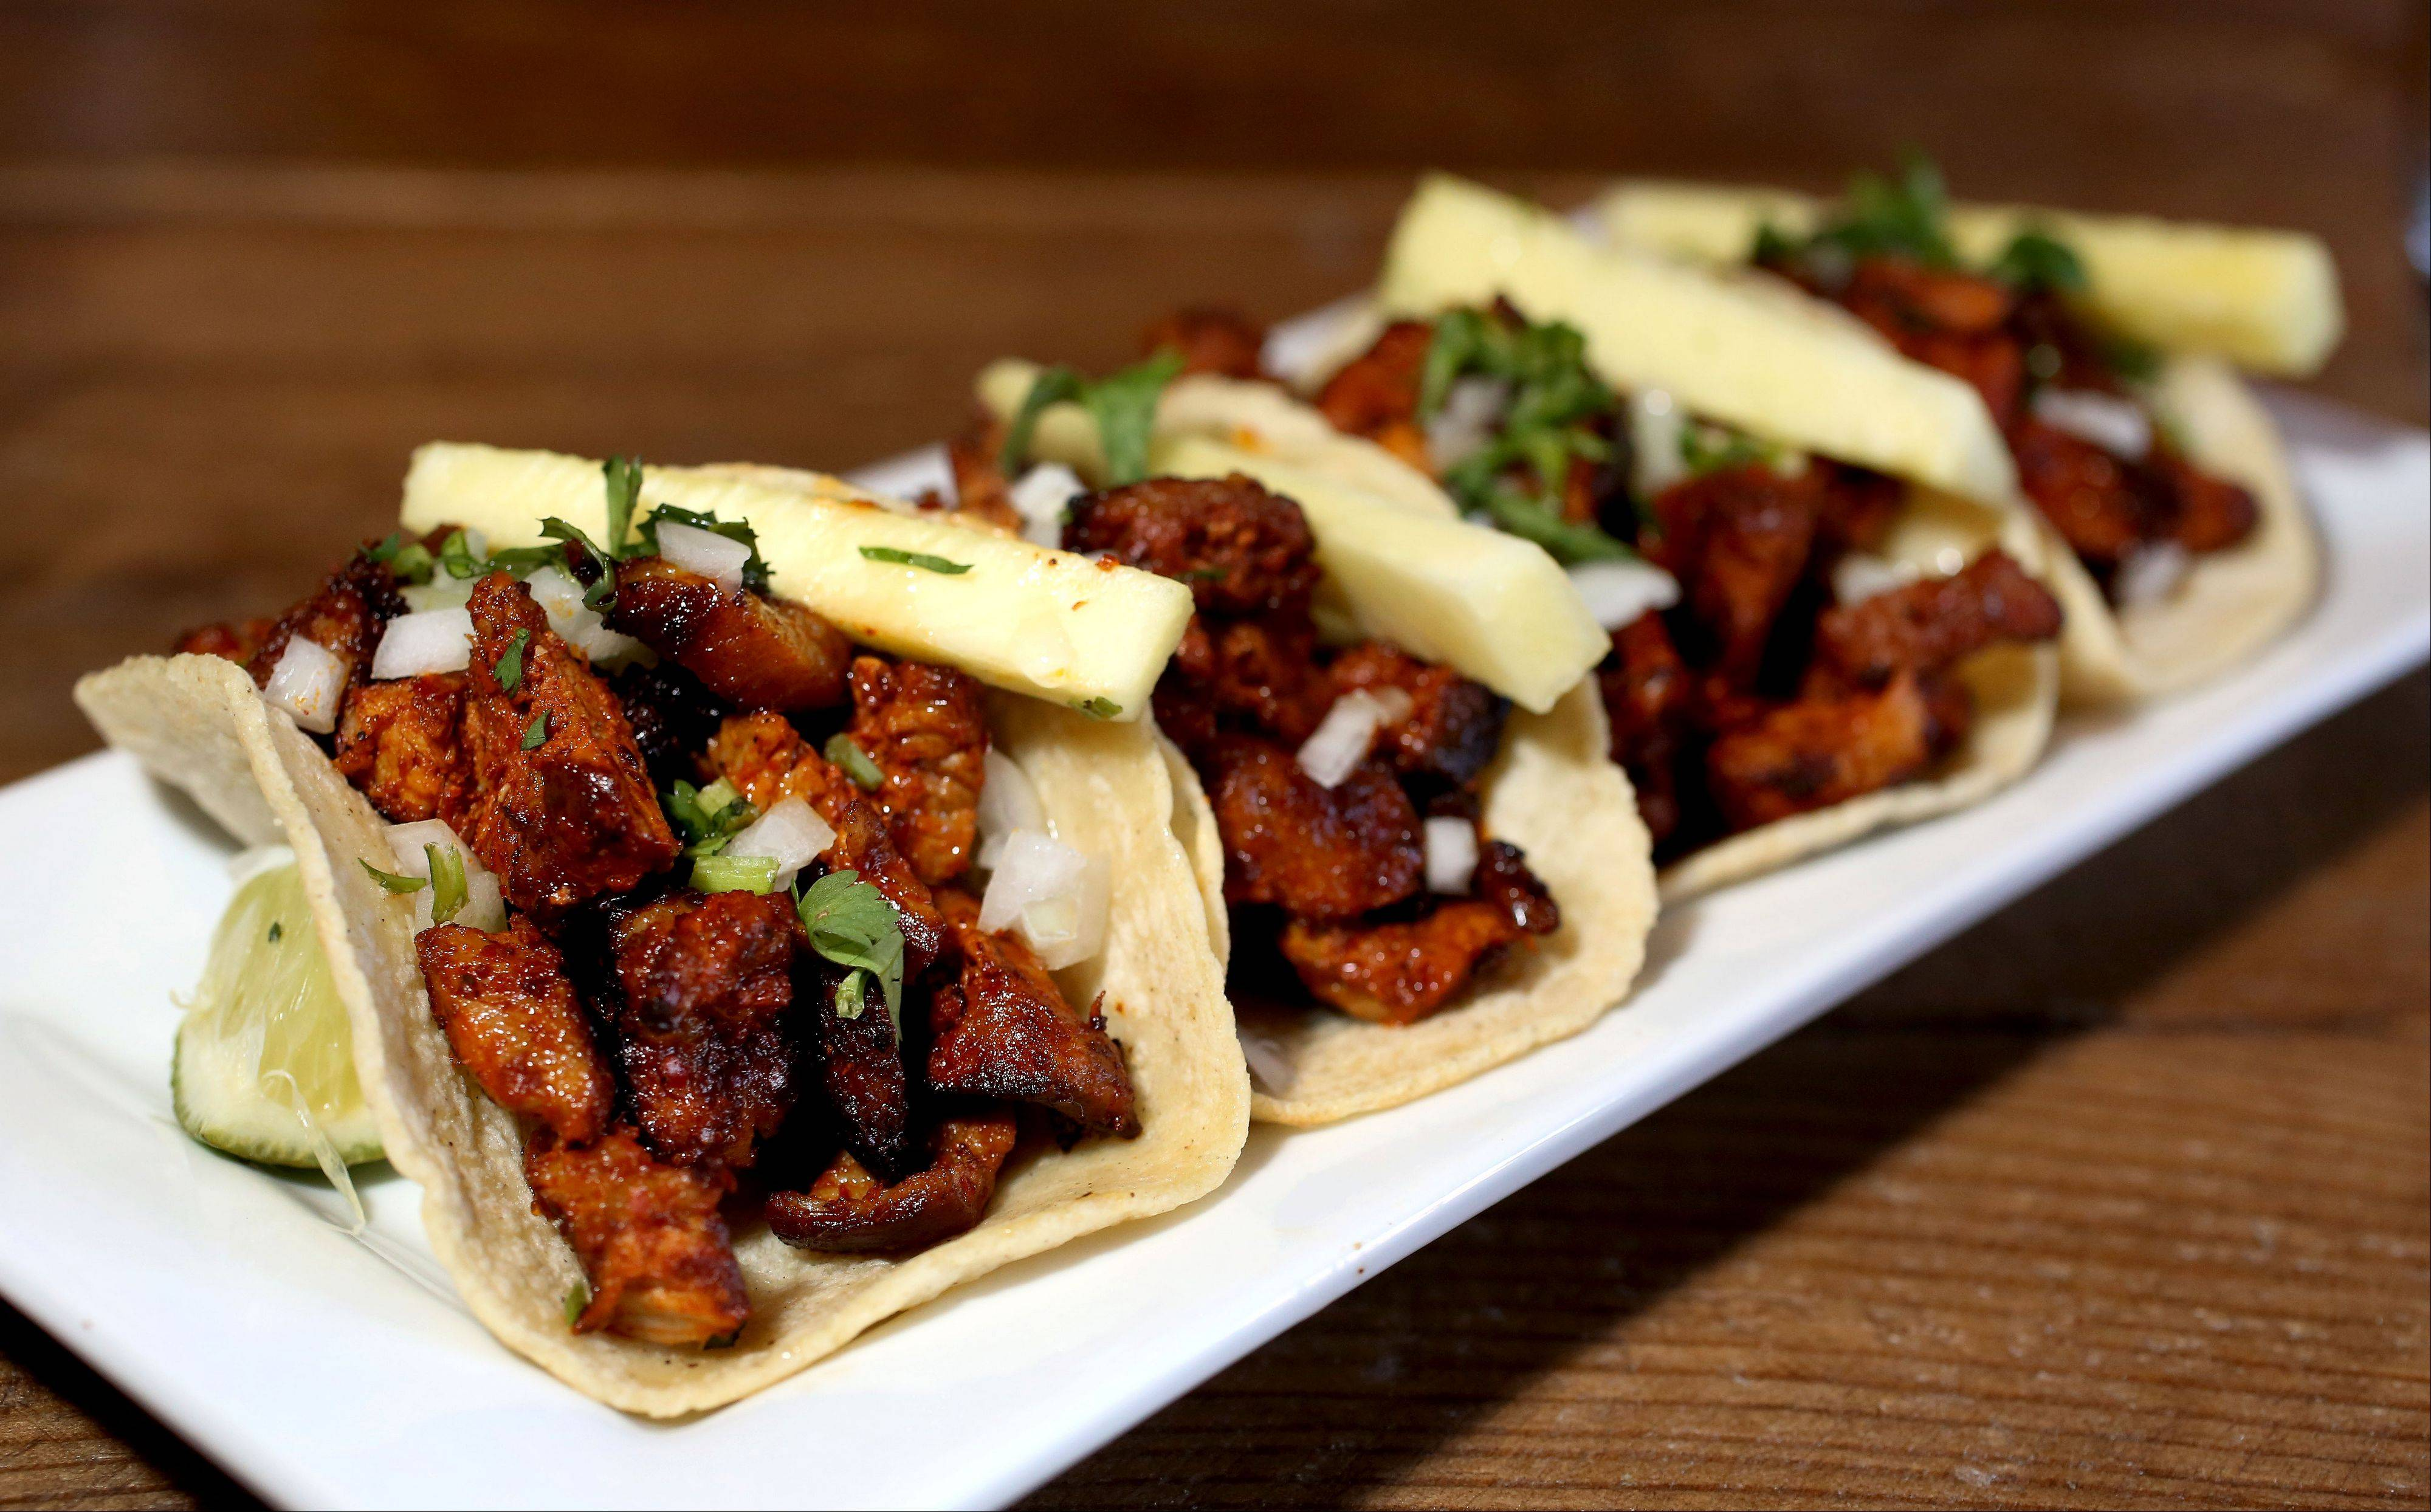 Tacos, like the Barbakoa Carne Asada Tacos, are a sure bet at Barbakoa in Downers Grove.